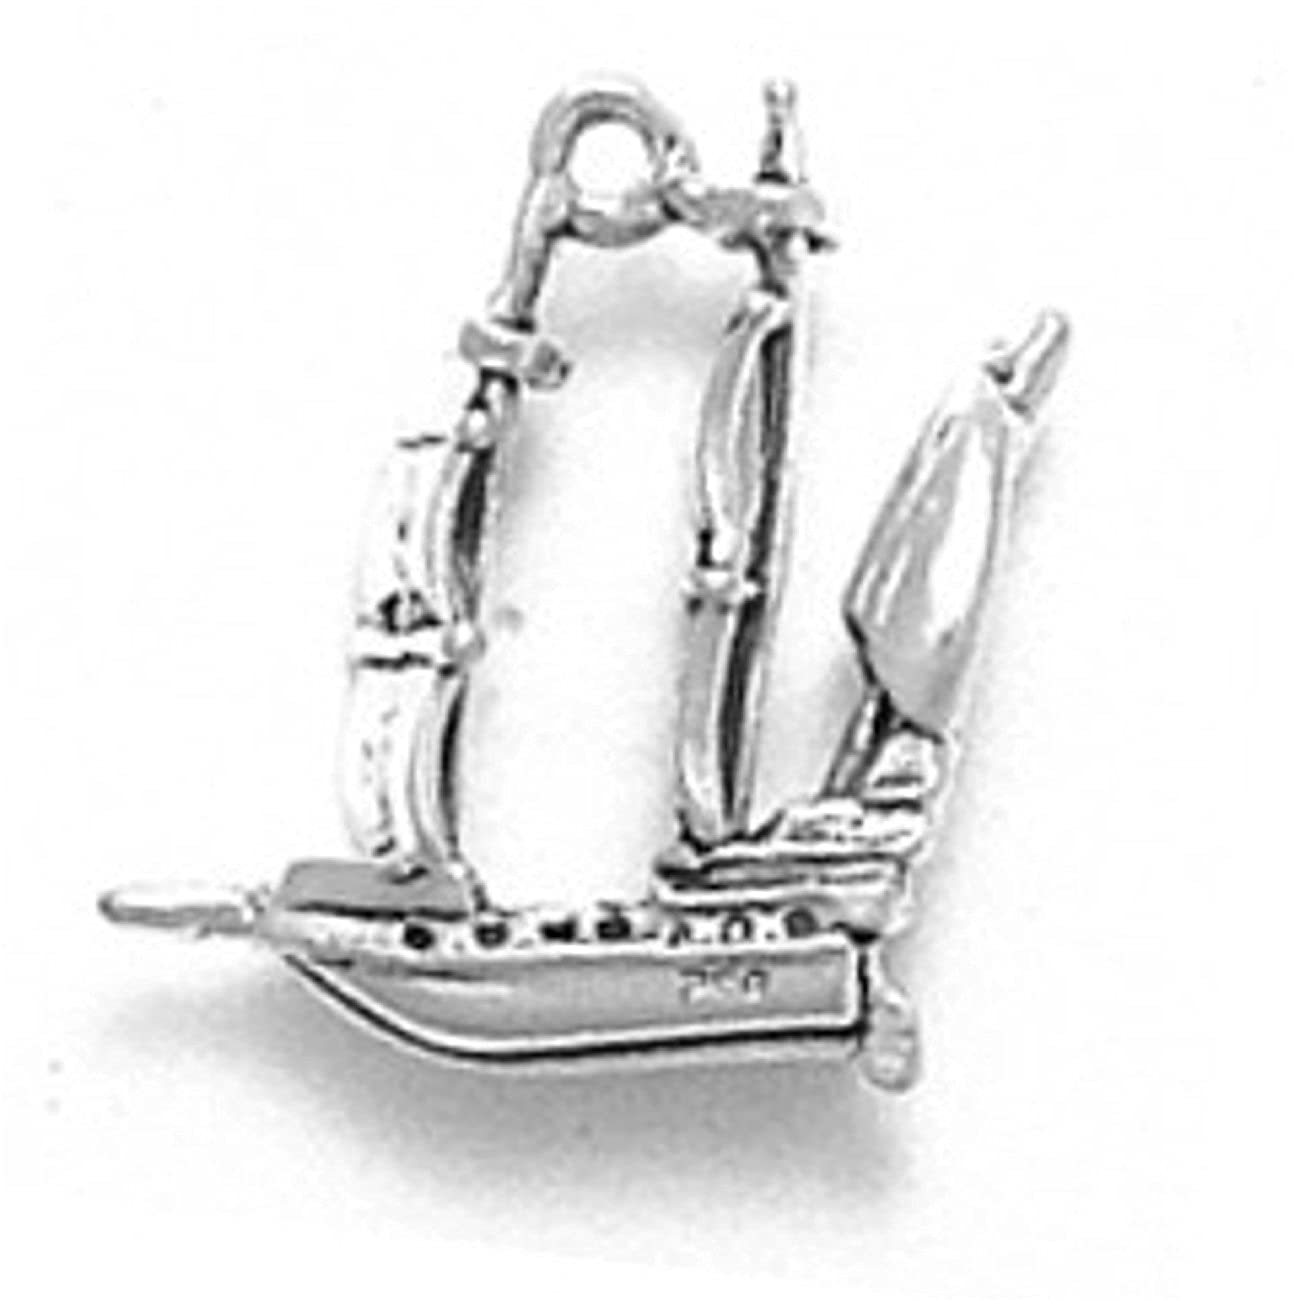 Sterling Silver Charm Bracelet With Attached 3D Pirate Pilgrim Spanish English Sailing Ship Charm